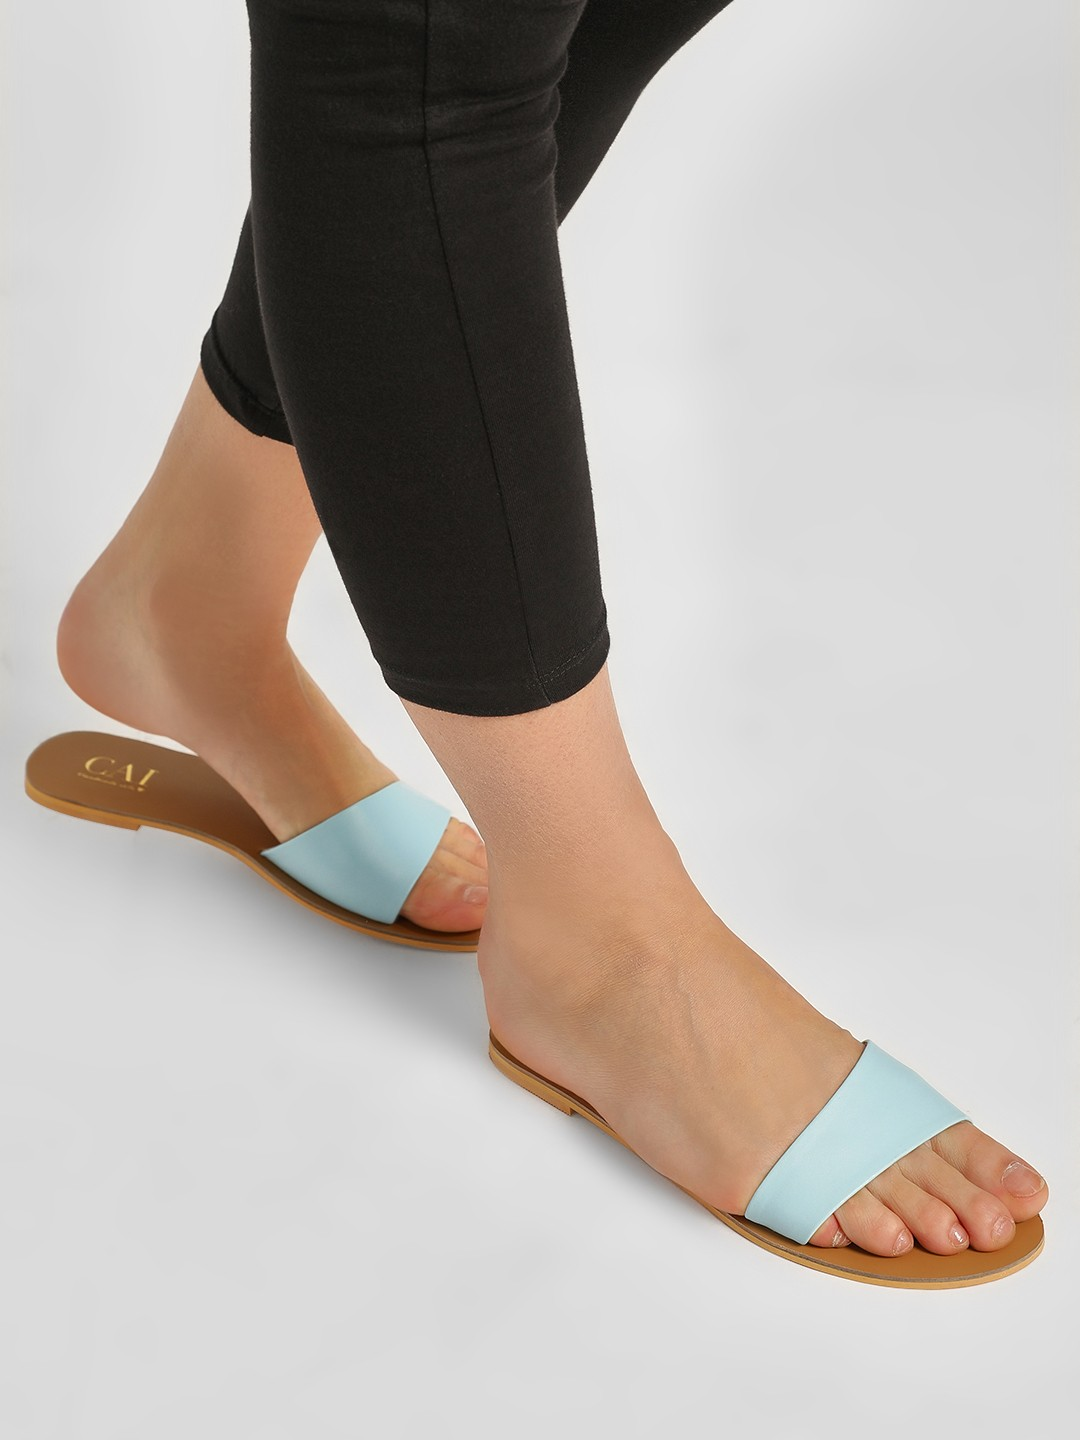 CAi Blue Asymmetric Strap Slides 1